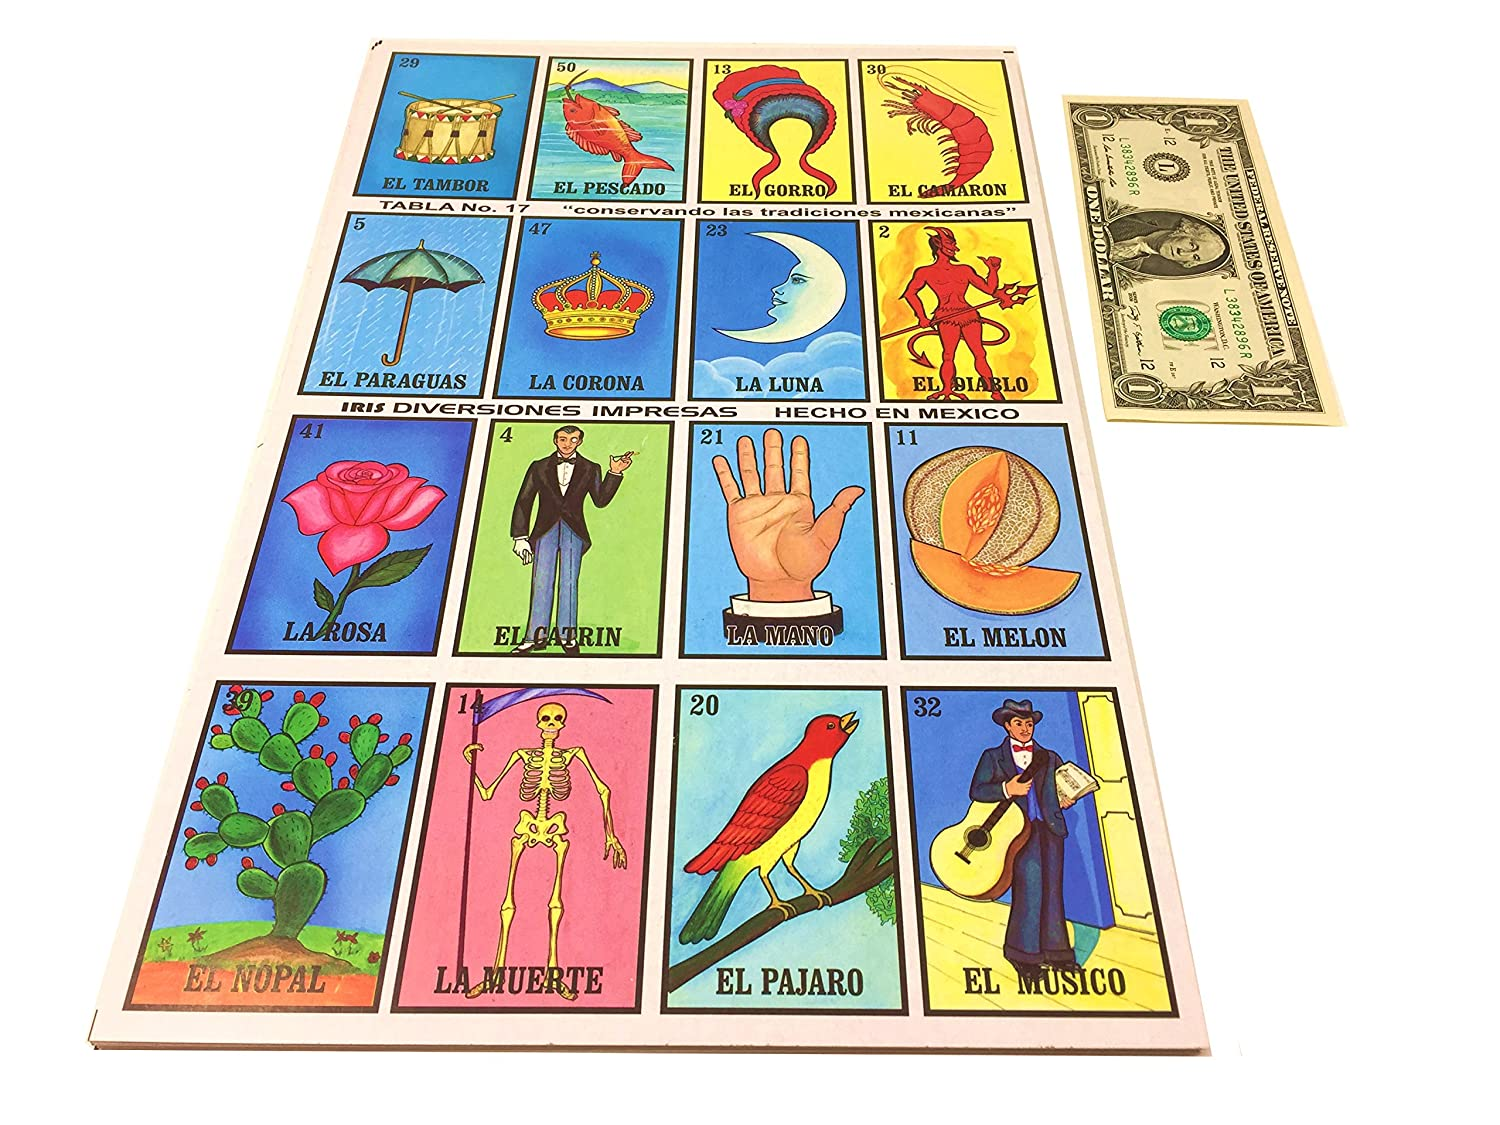 Amazon.com: Tio Chentes Mexican Bingo Loteria Family Board Game - Set of 20 Jumbo Boards and Deck of 54 Cards: Toys & Games